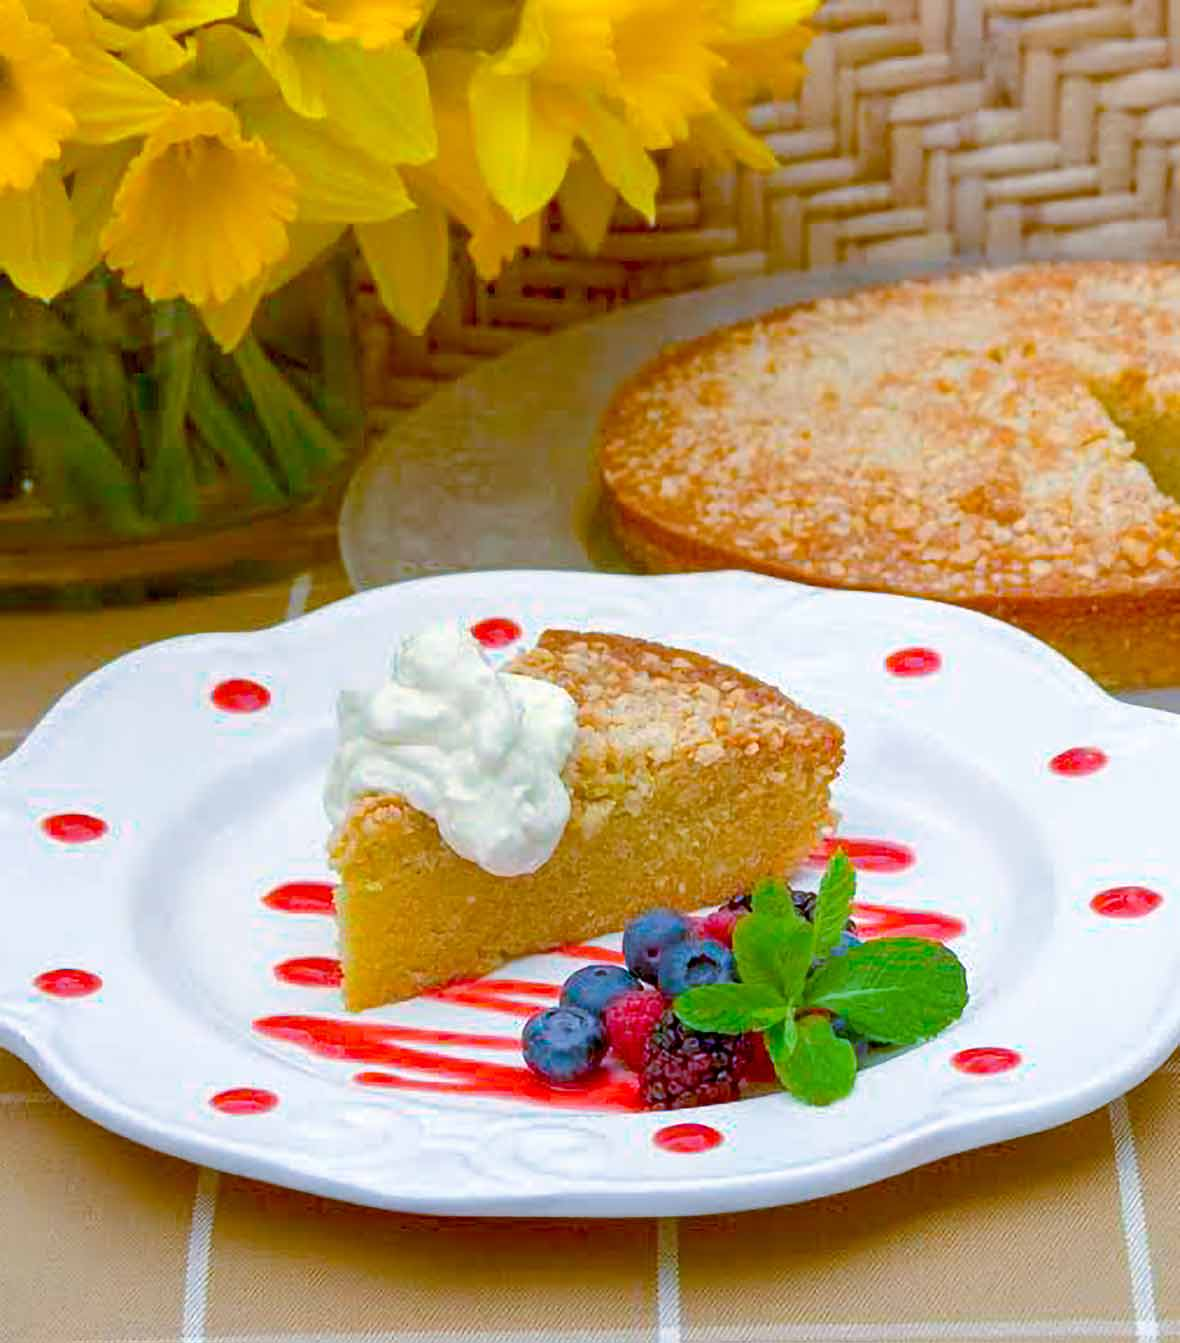 Slice of olive oil cake topped with a dollop of lemon curd on a white plate with red dots and squiggle of berry coulis